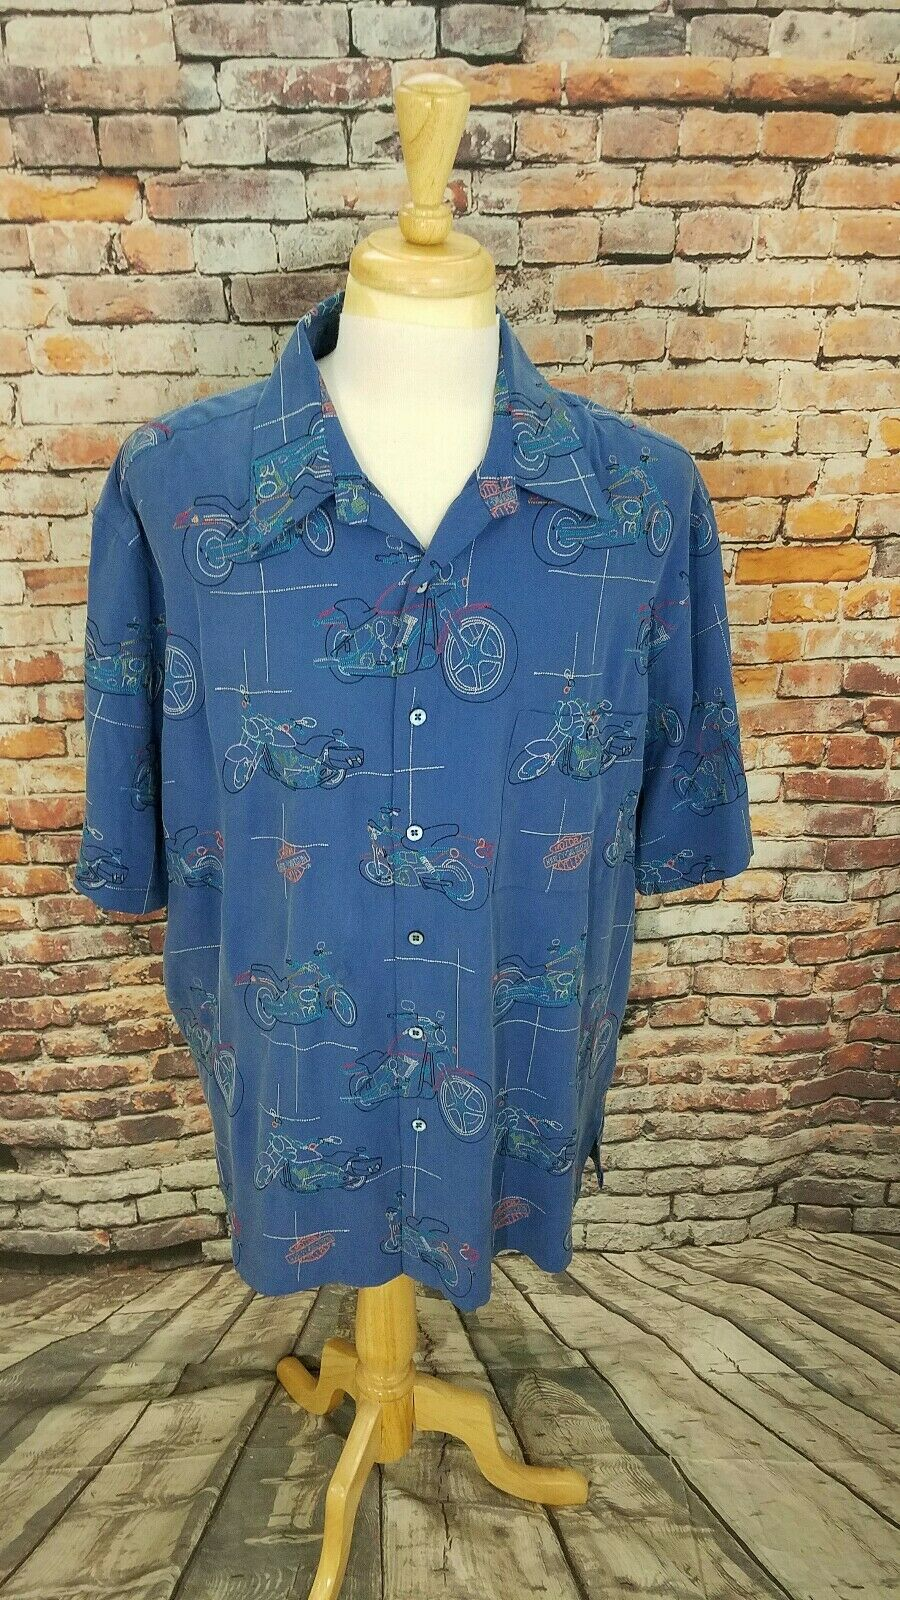 Harley Davidson Men S S bluee MOTORCYCLE EMBROIDERED Button Up SILK Shirt XL EUC